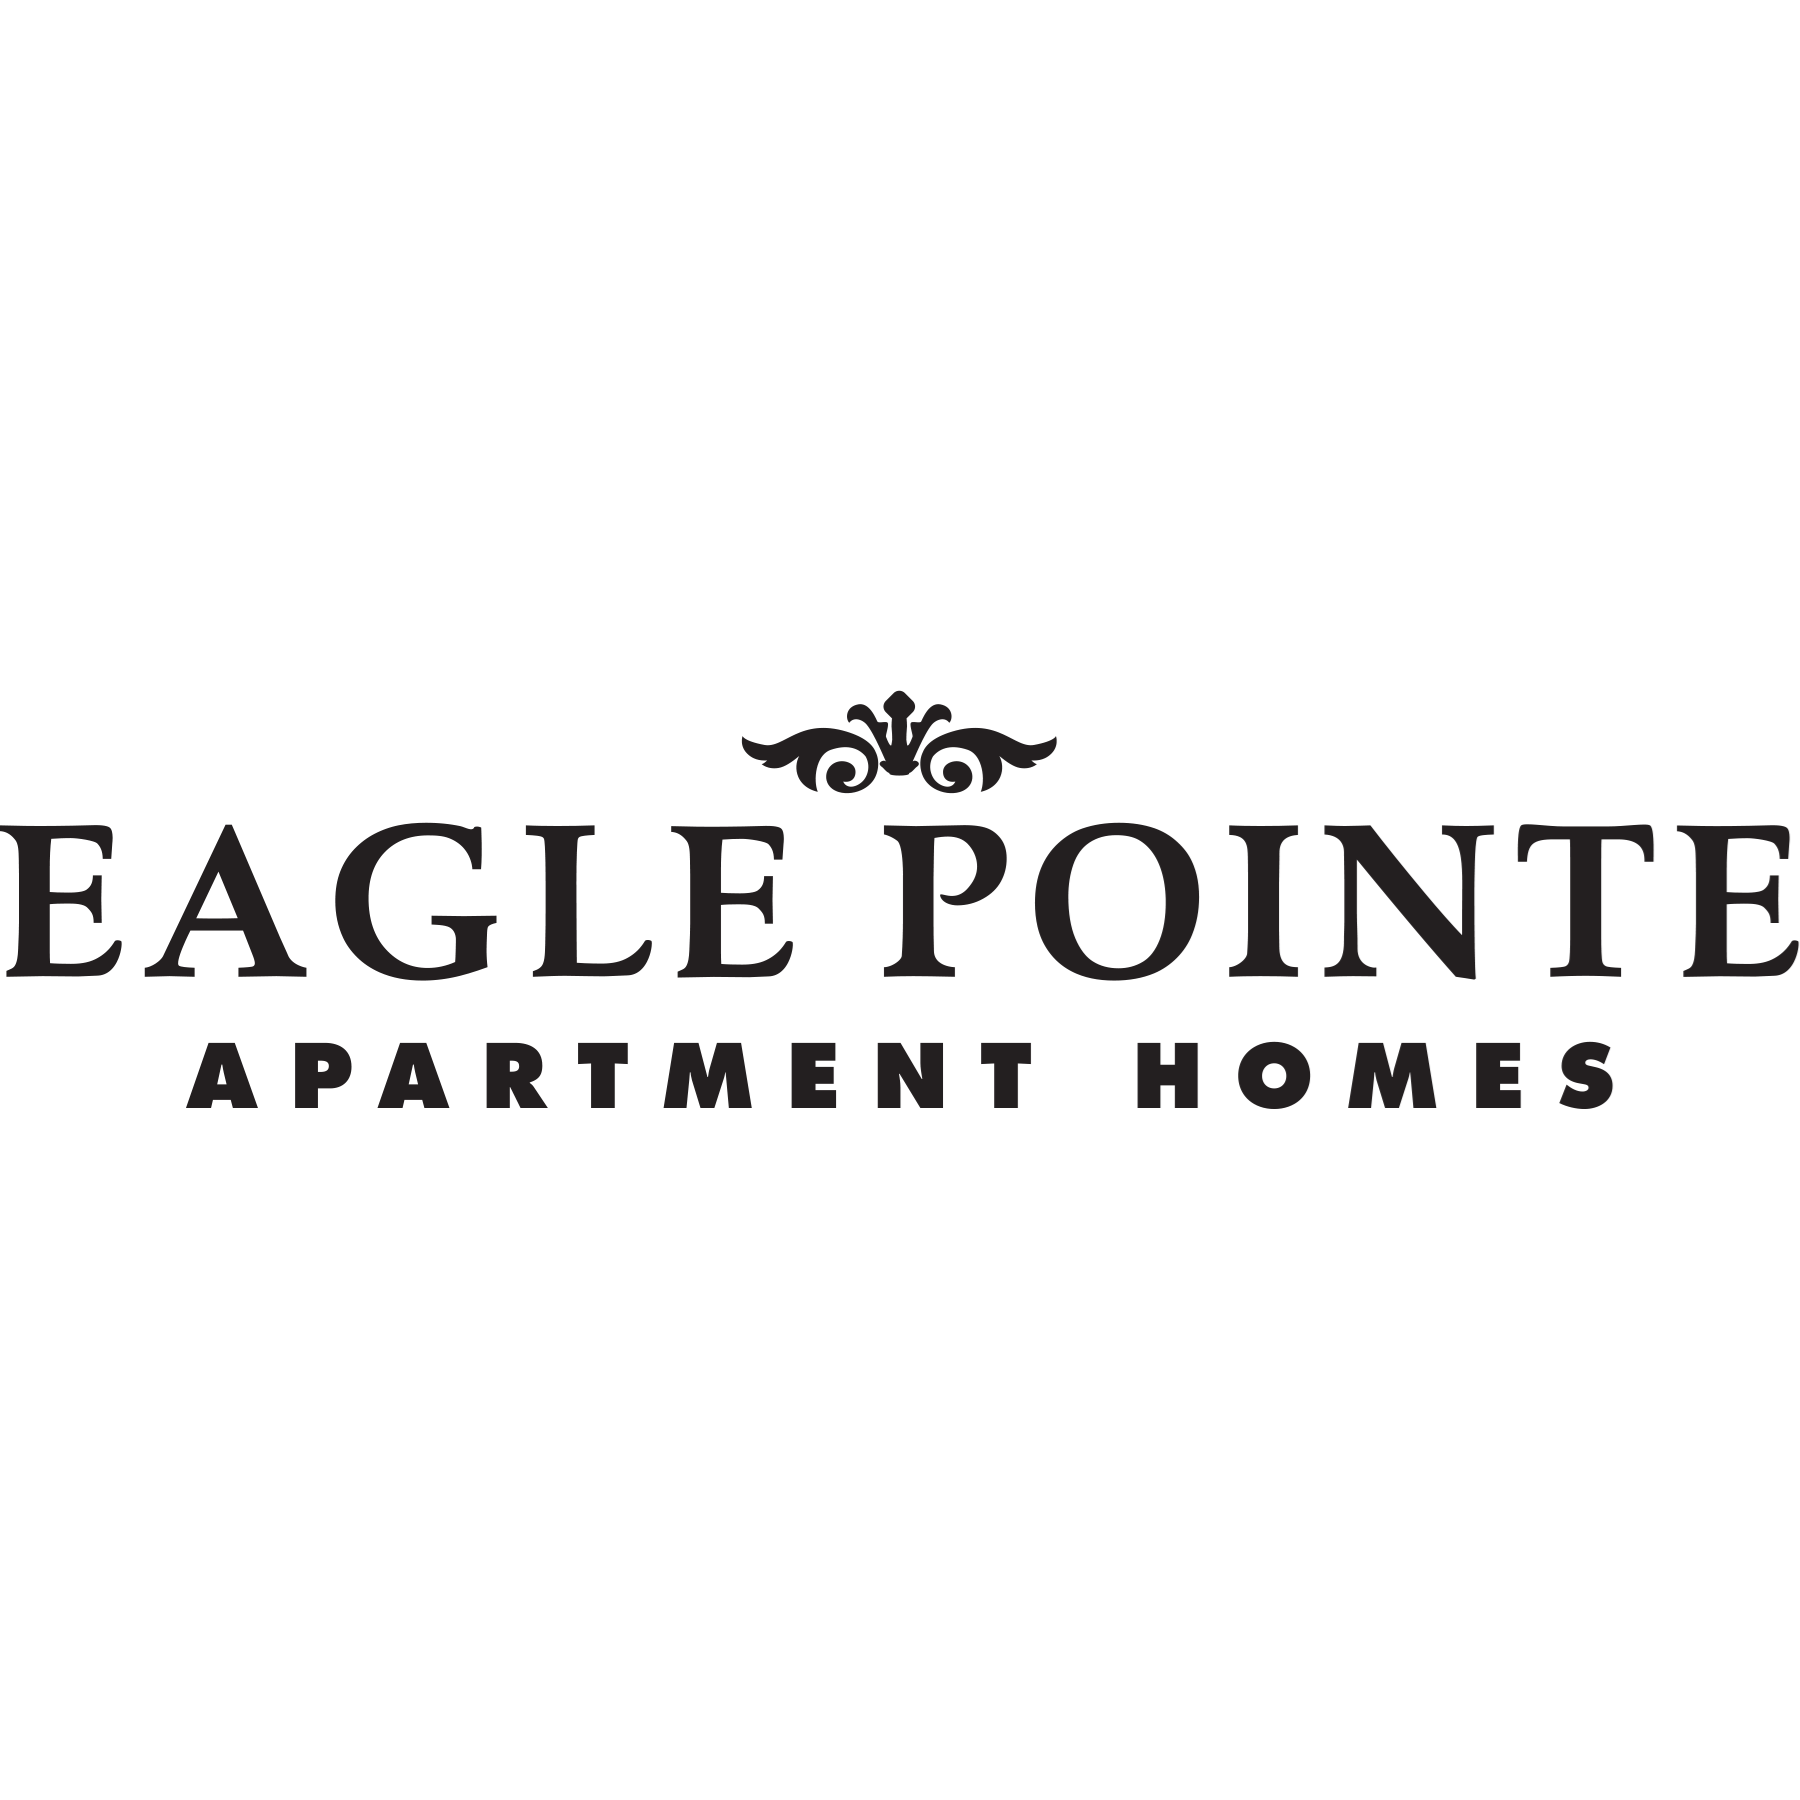 Eagle Pointe Apartments image 6